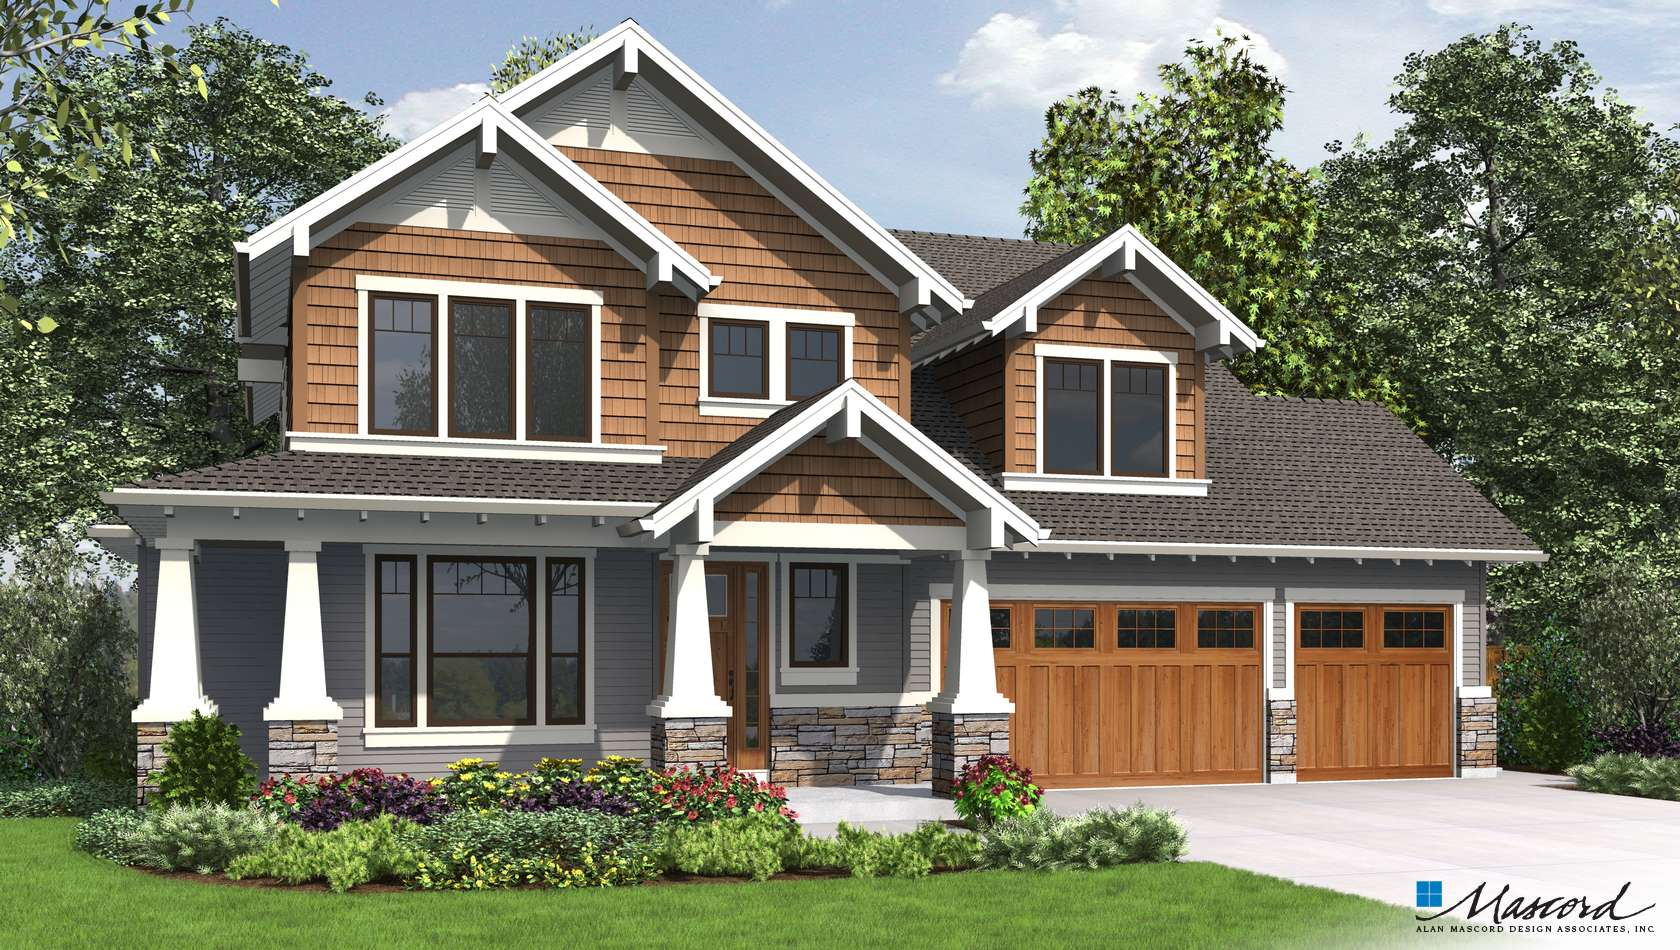 Main image for house plan 22199A: The Jefferson